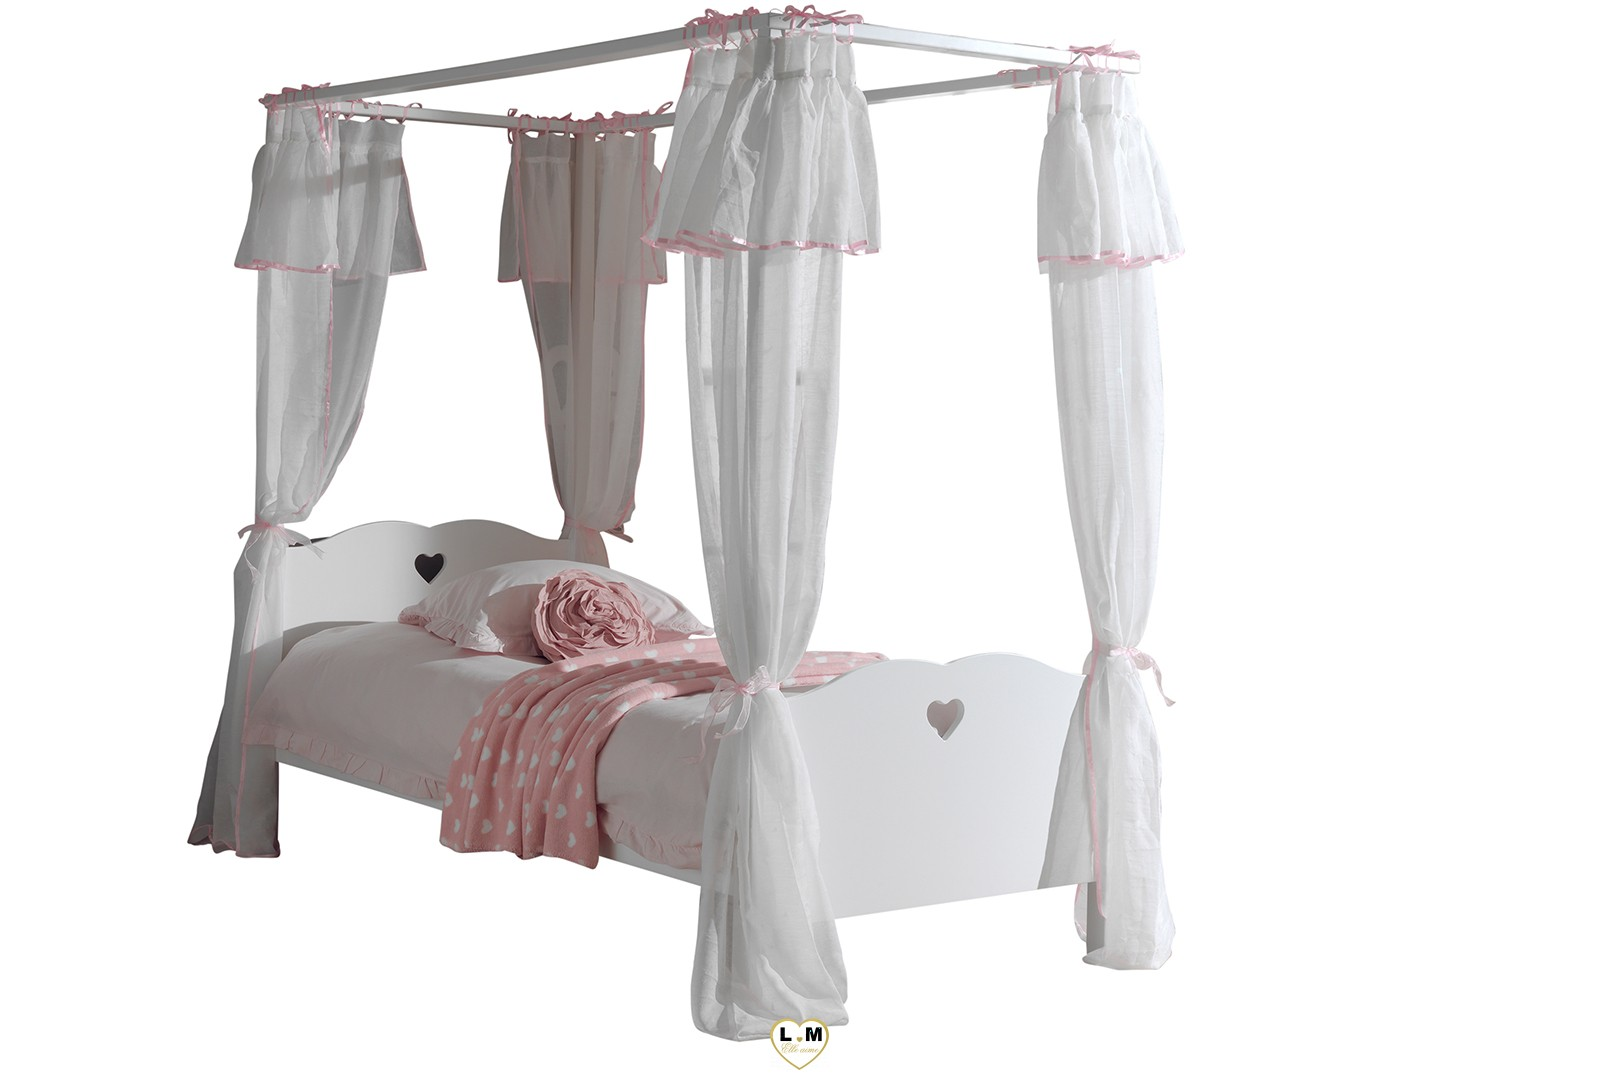 amour laque blanc mat chambre enfant rideaux voilage pour lit baldaquin lignemeuble com. Black Bedroom Furniture Sets. Home Design Ideas